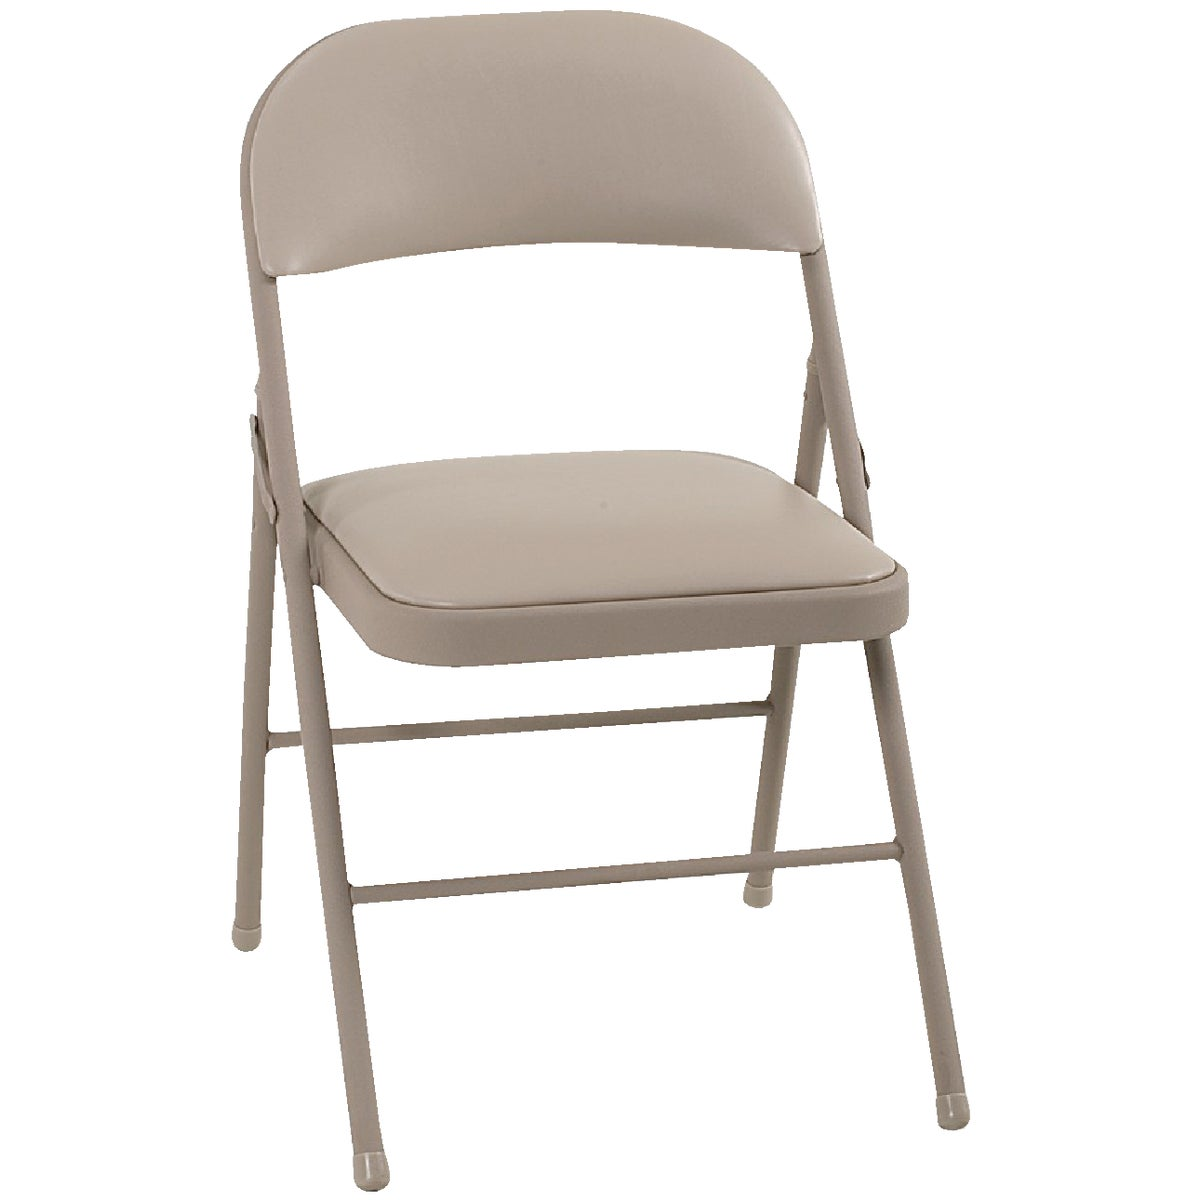 ANTQ LINEN FOLDING CHAIR - 14-993-ANT4 by Cosco    J Myalls